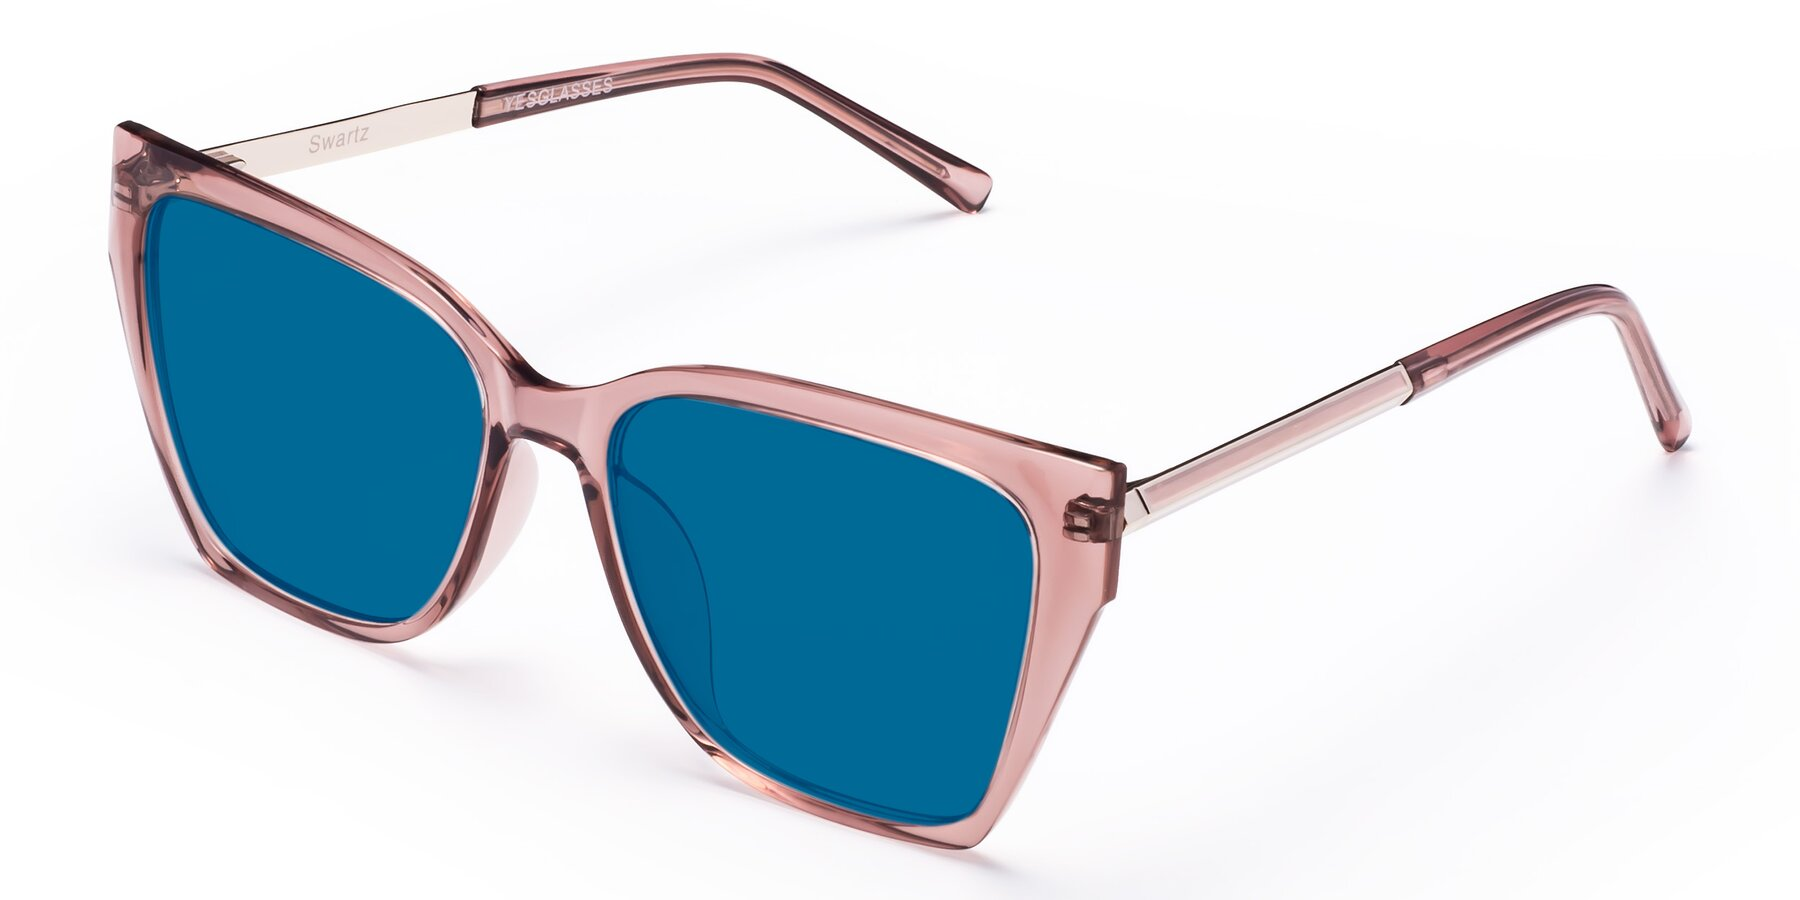 Angle of Swartz in Grape with Blue Tinted Lenses